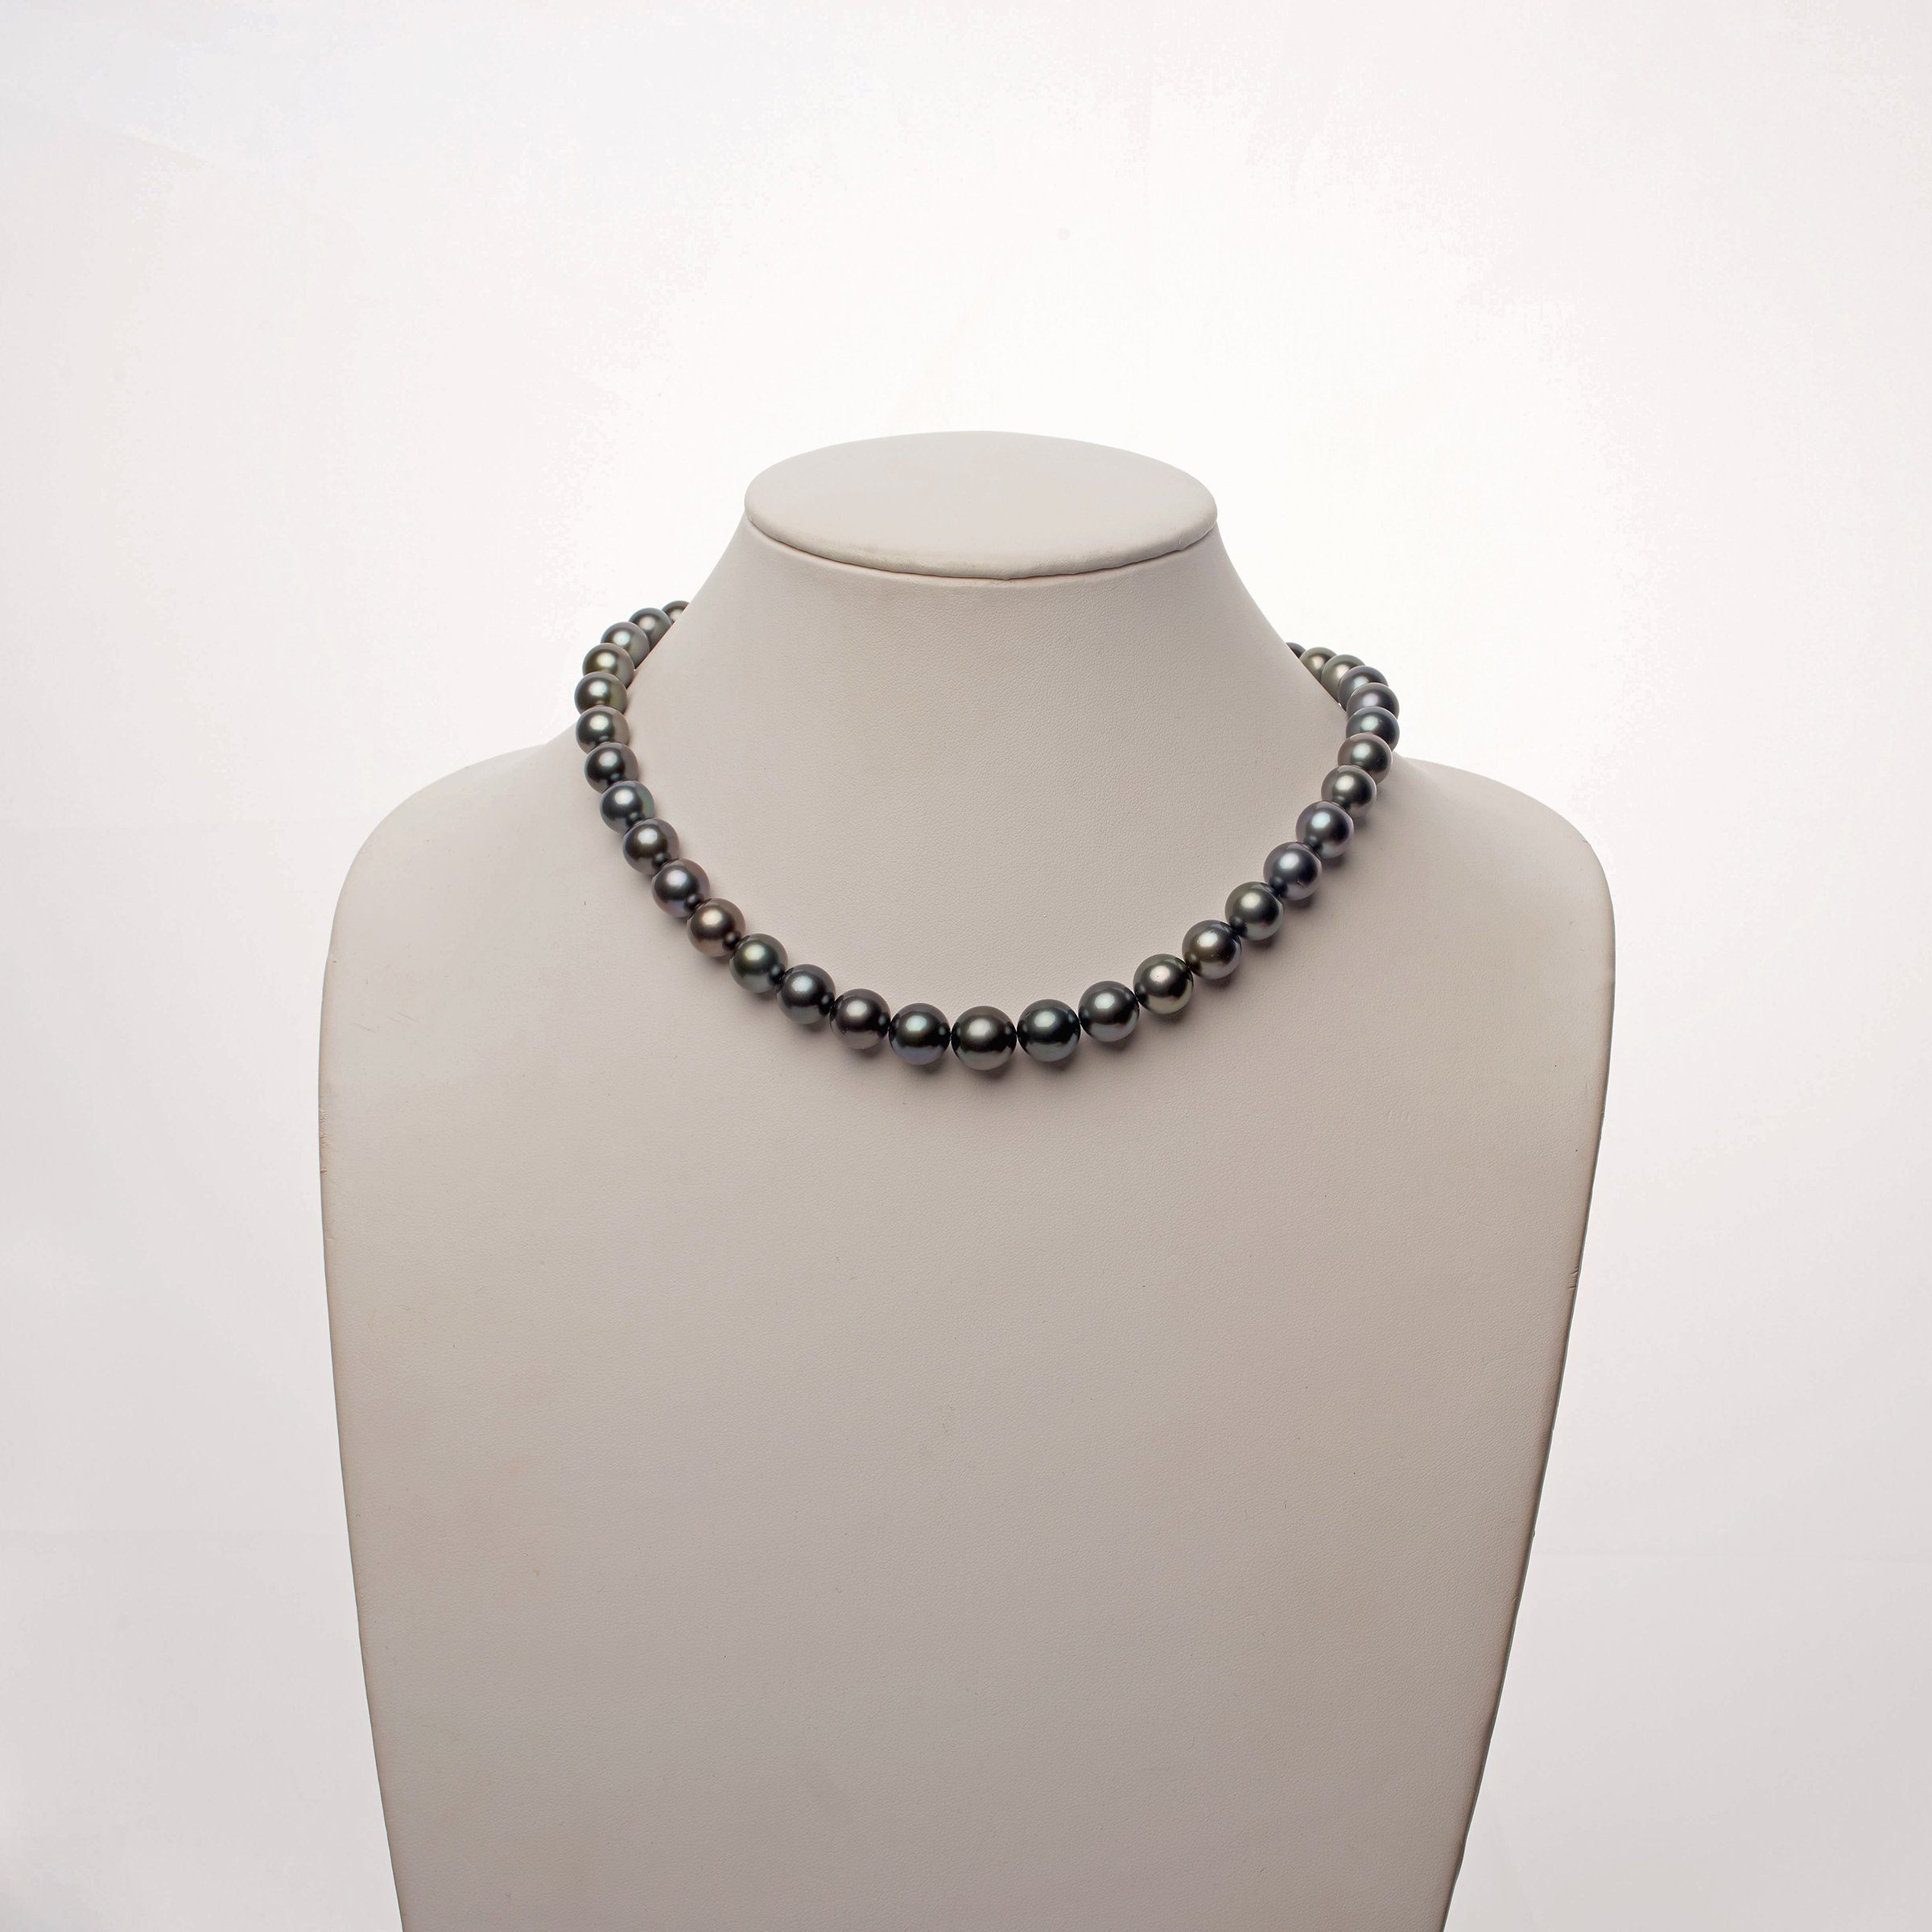 Moonlight Tahitian Pearl Necklace